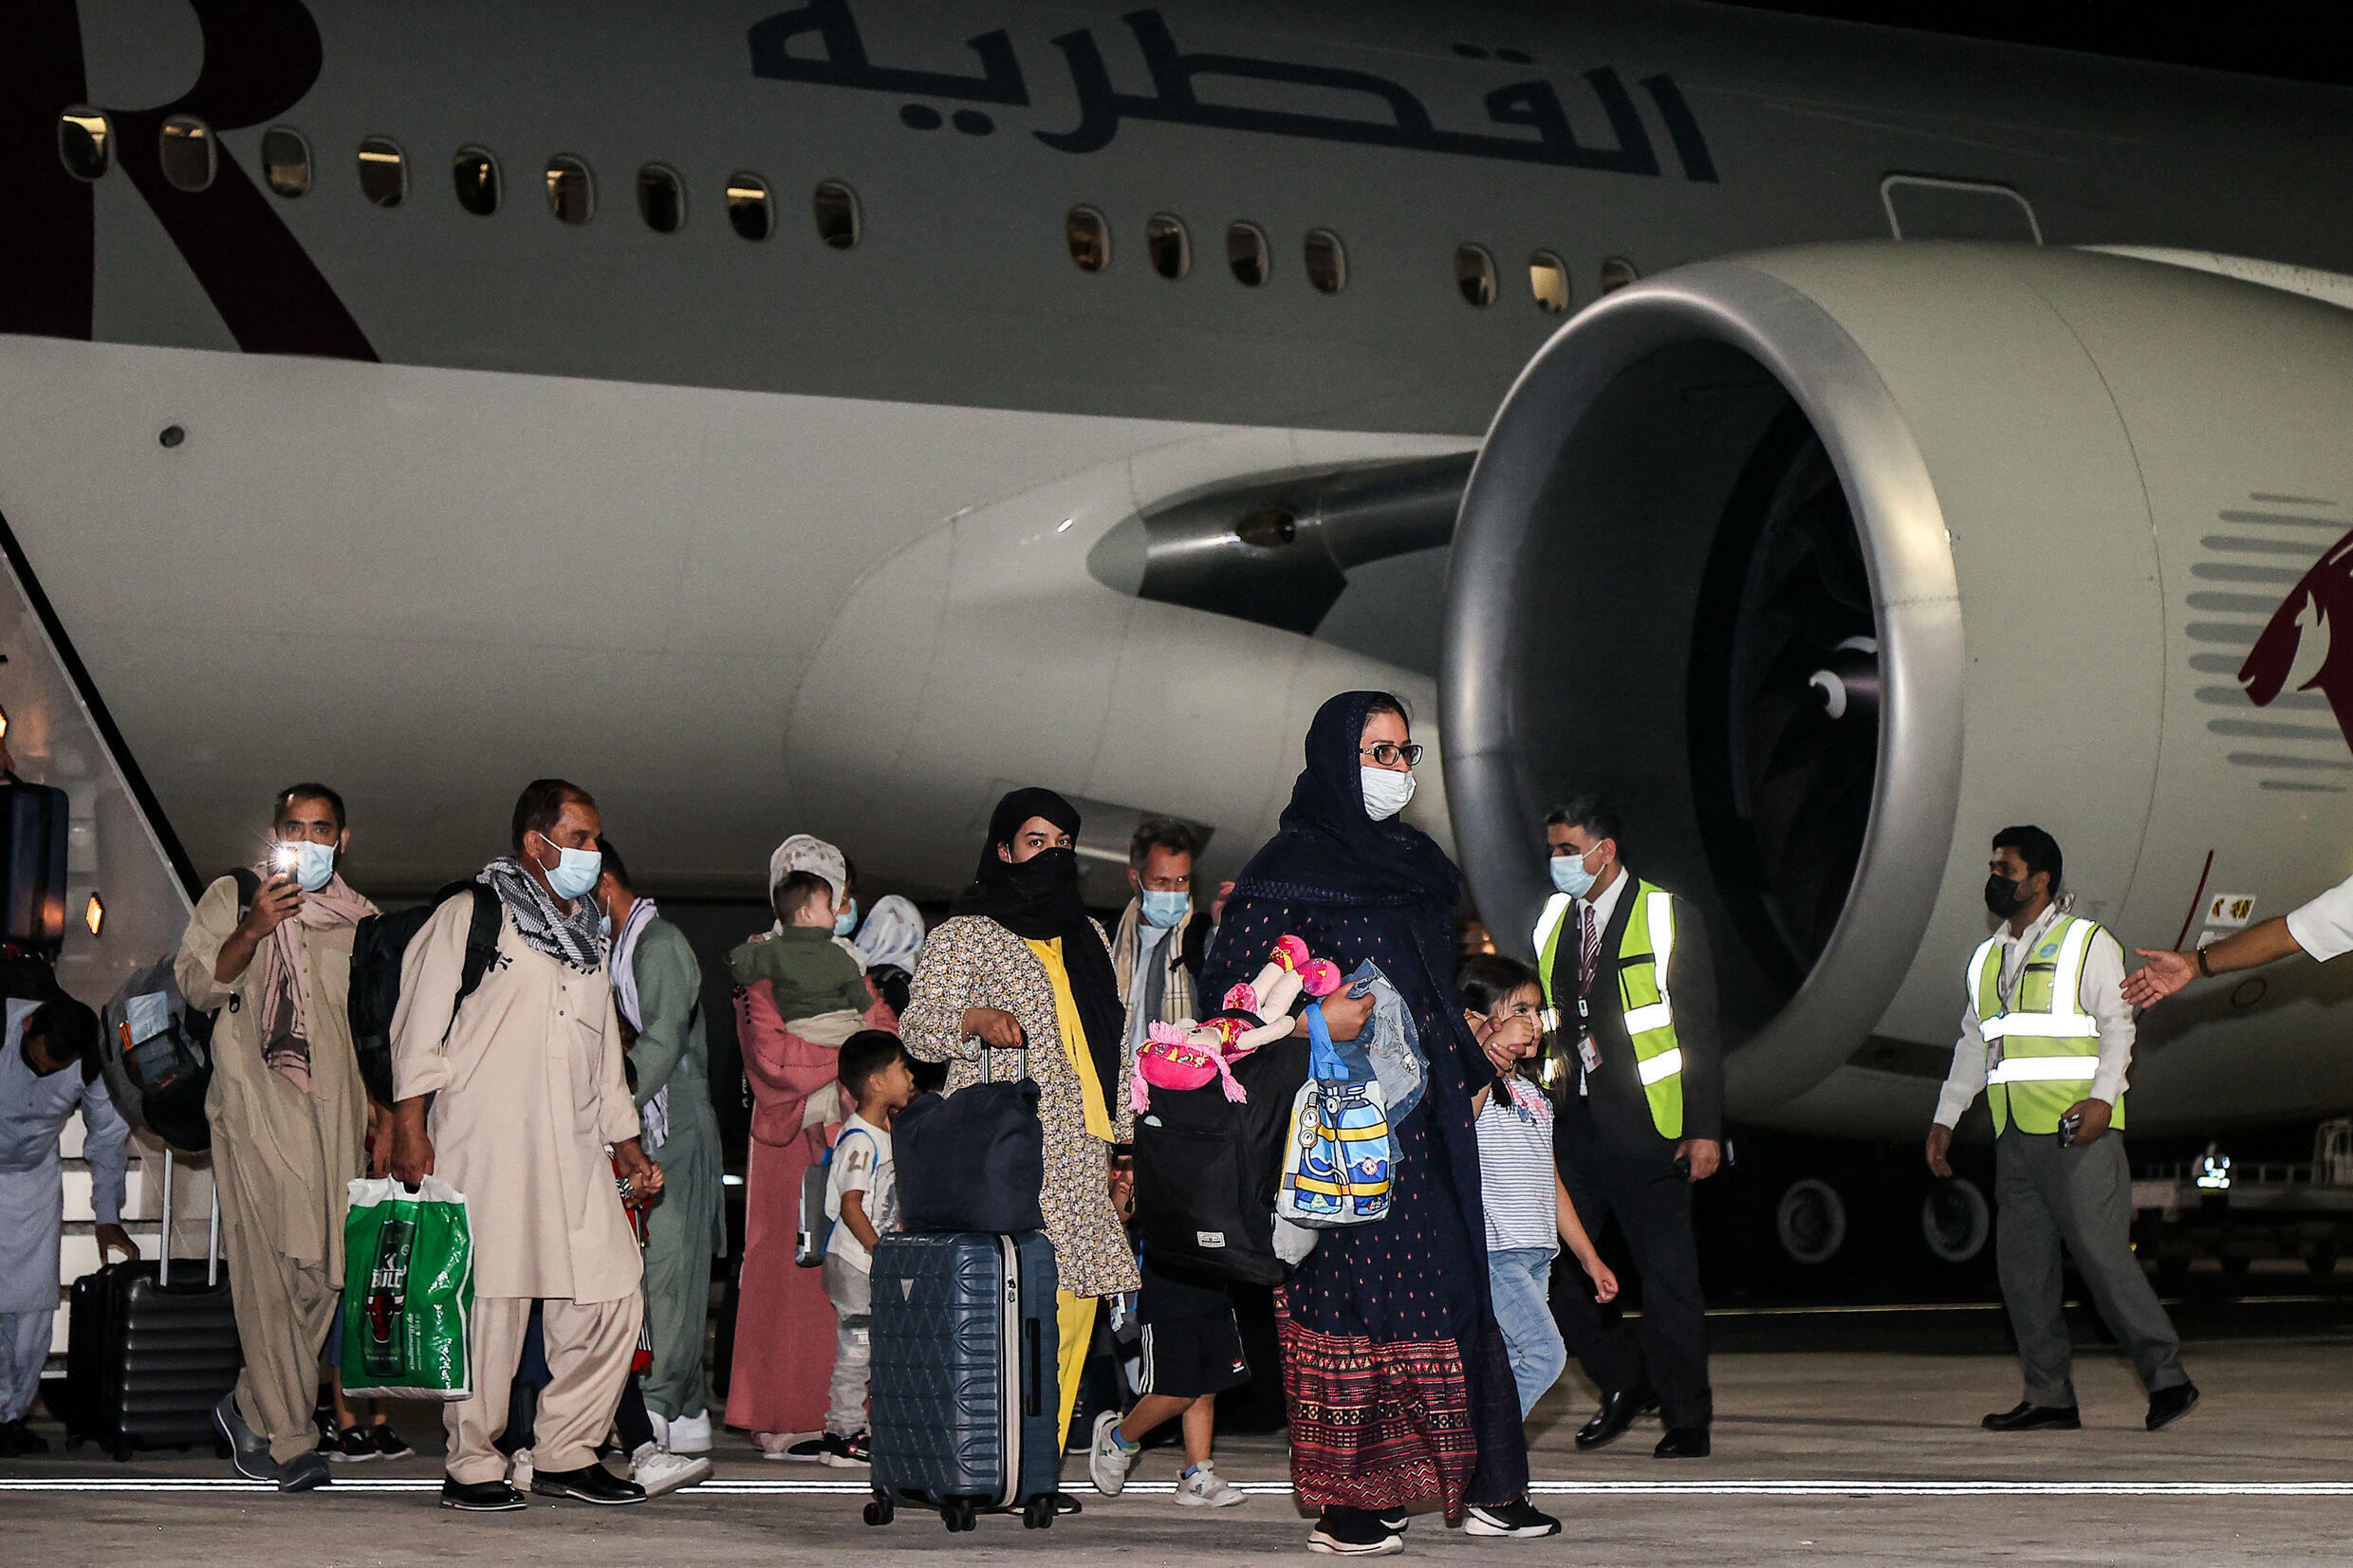 Evacuees from Afghanistan arrive at Hamad International Airport in Qatar's capital Doha on the first flight carrying foreigners out of the Afghan capital since the conclusion of the US withdrawal last month